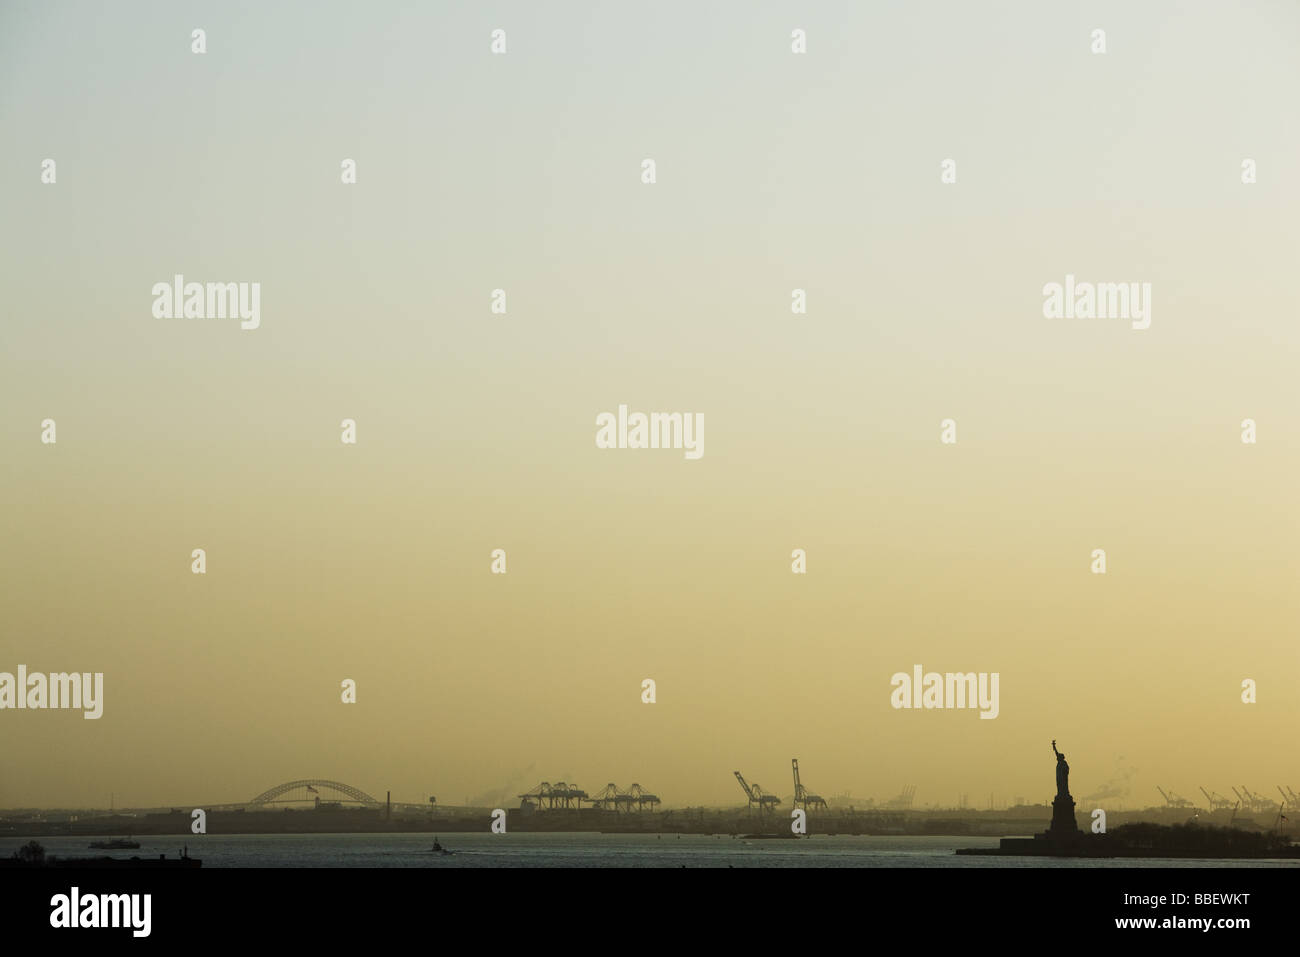 United States, New York City, New York Harbor at sunrise, Statue of Liberty visible in distance Stock Photo